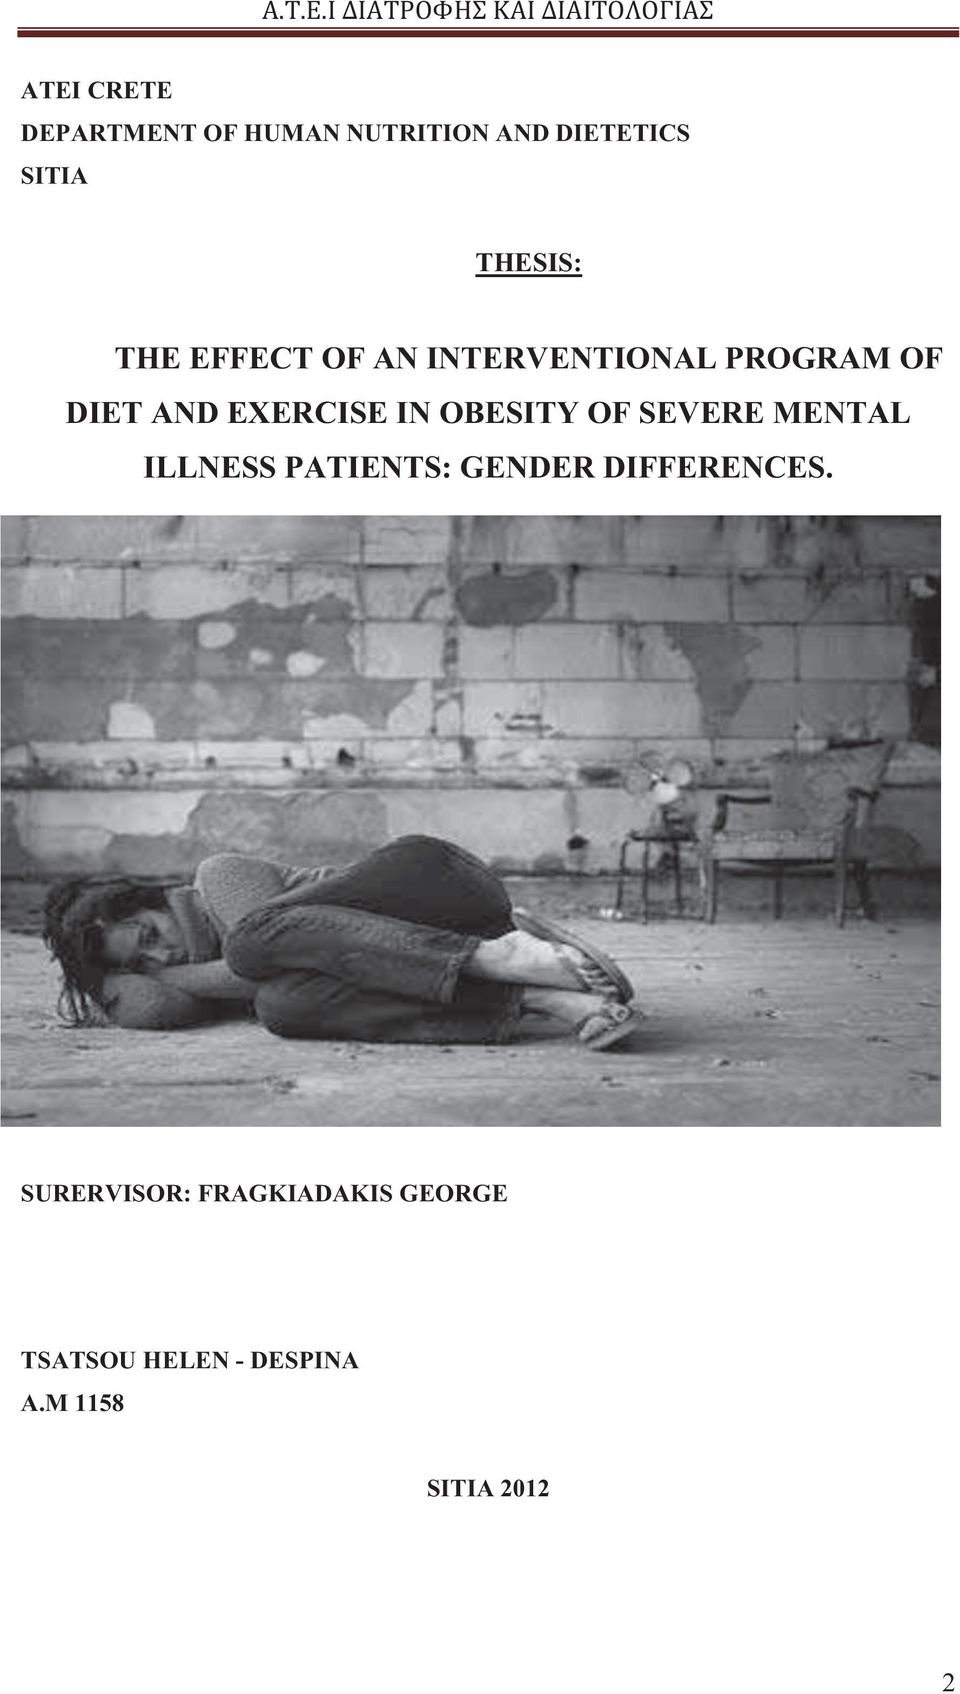 OBESITY OF SEVERE MENTAL ILLNESS PATIENTS: GENDER DIFFERENCES.